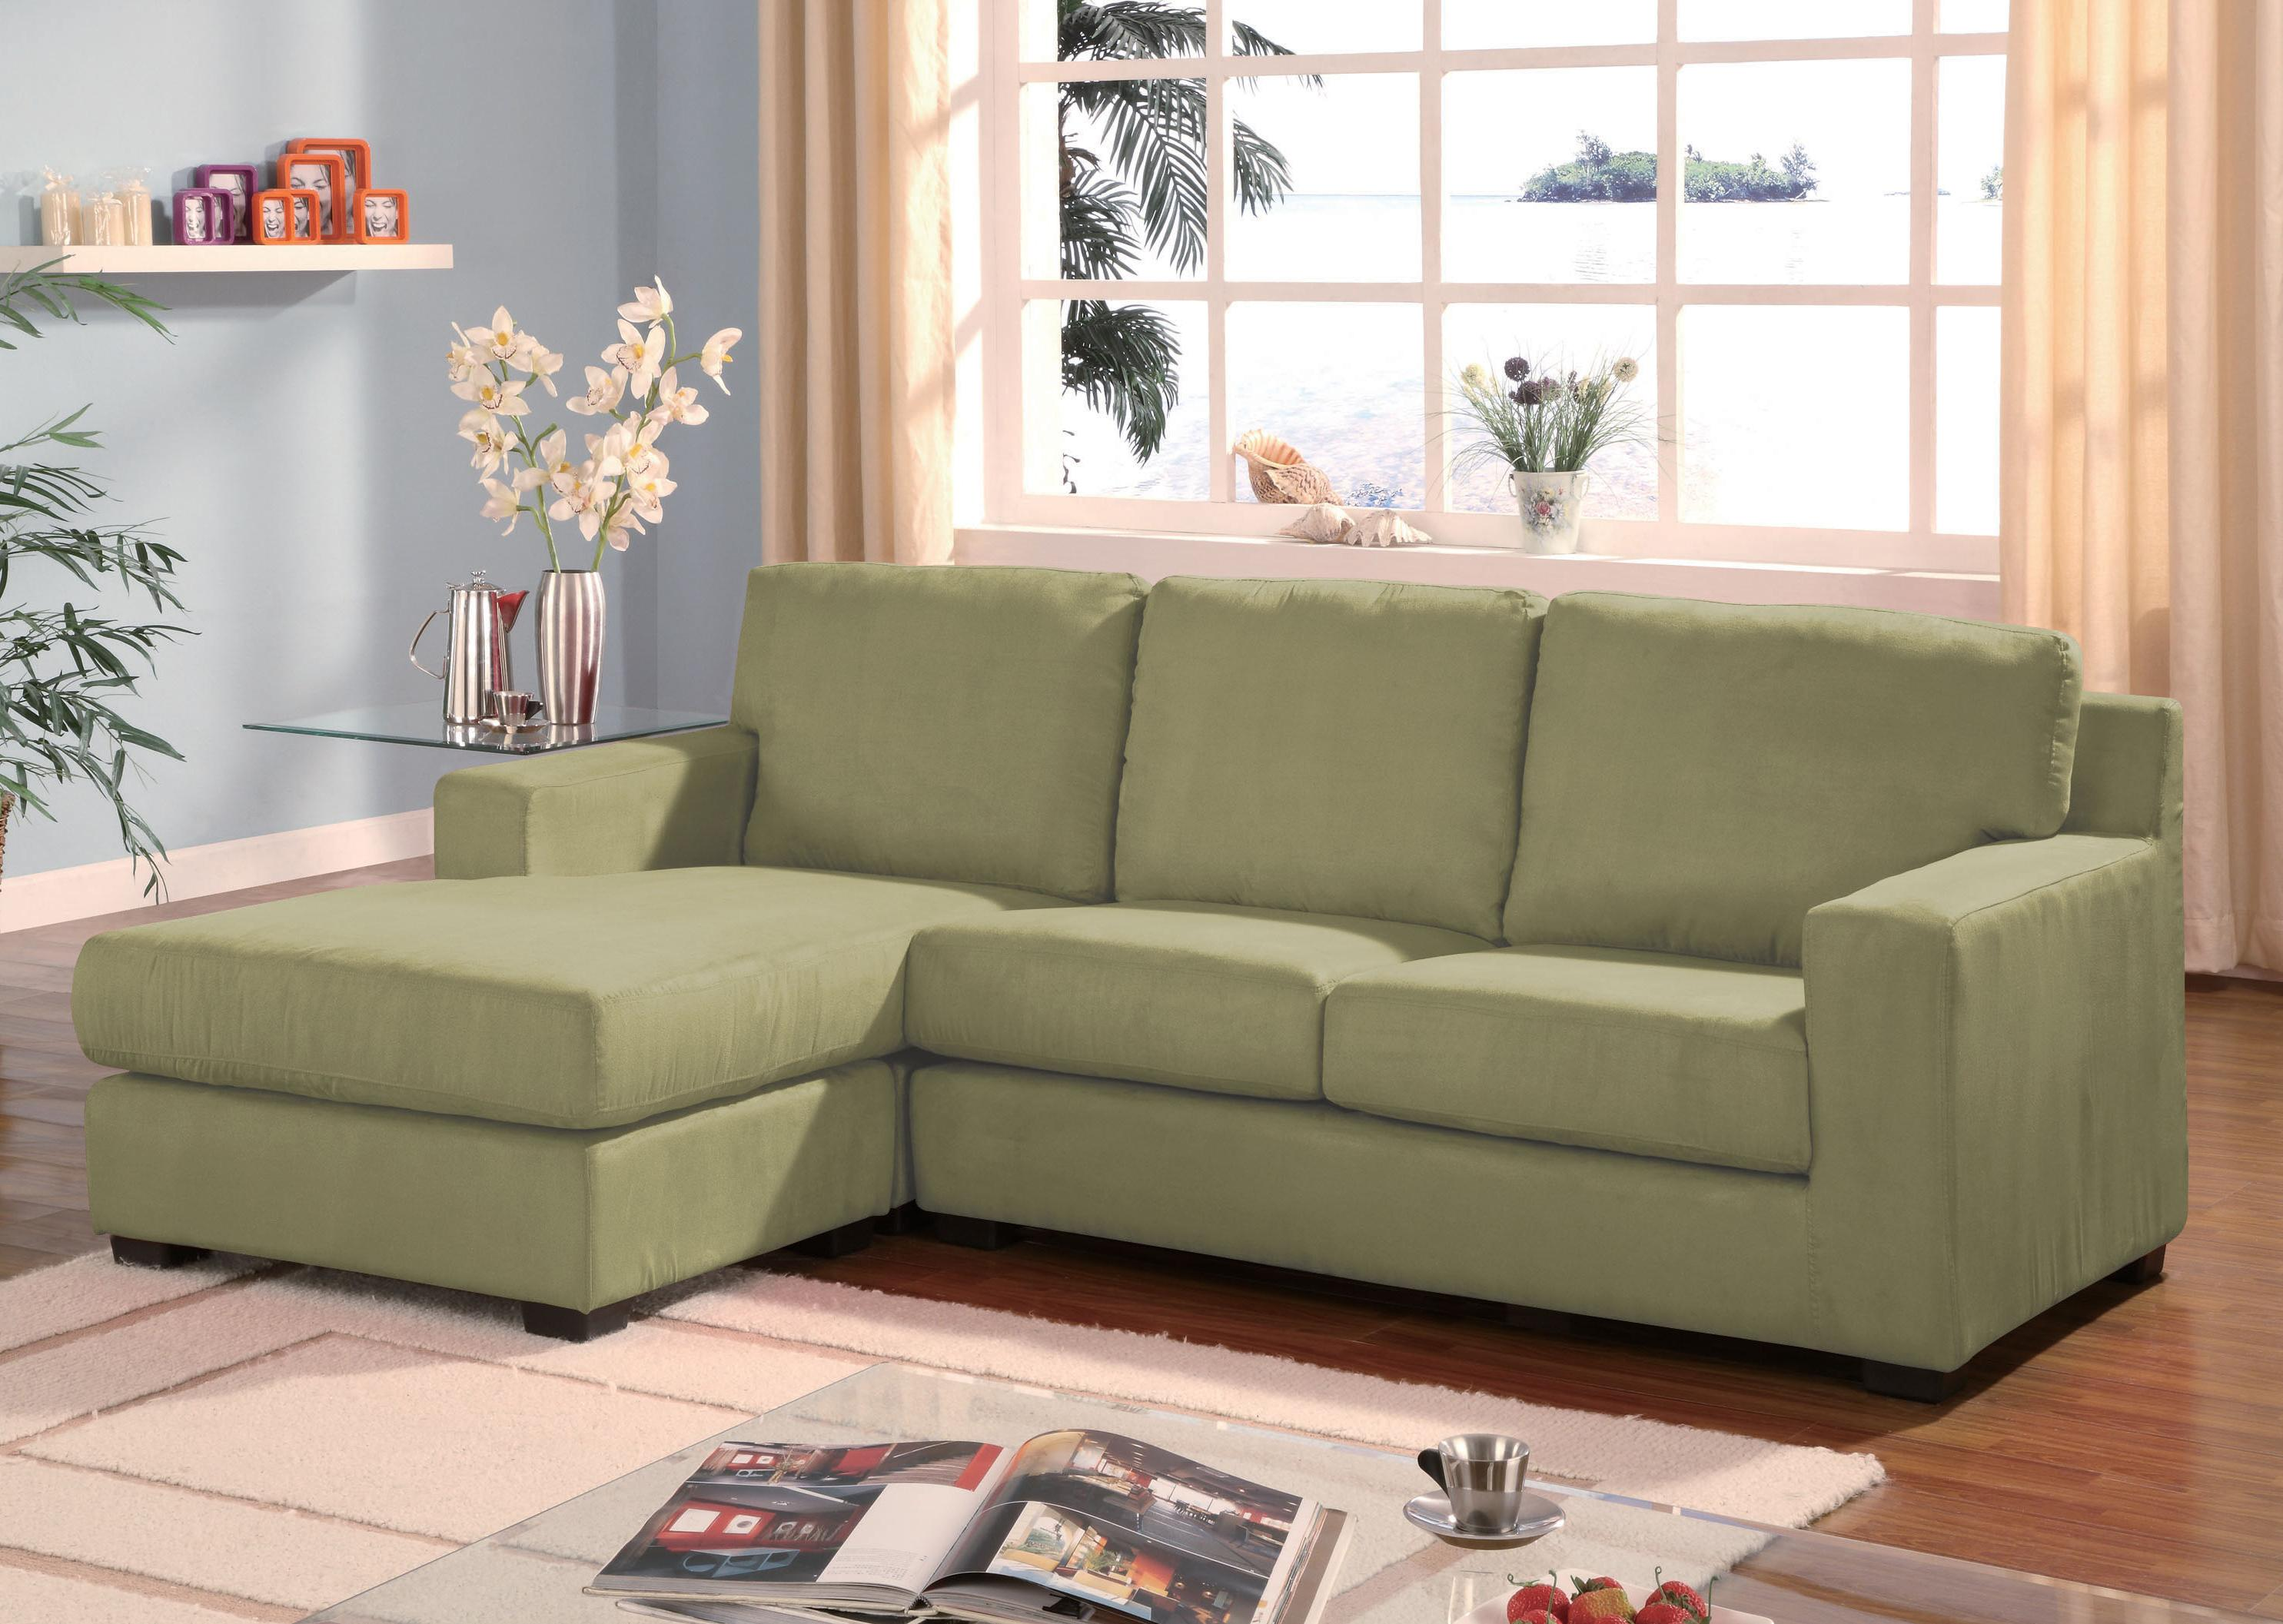 Acme Furniture Sectionals Sectional Sofa - Item Number: 5915 LAFC+5915 RAF